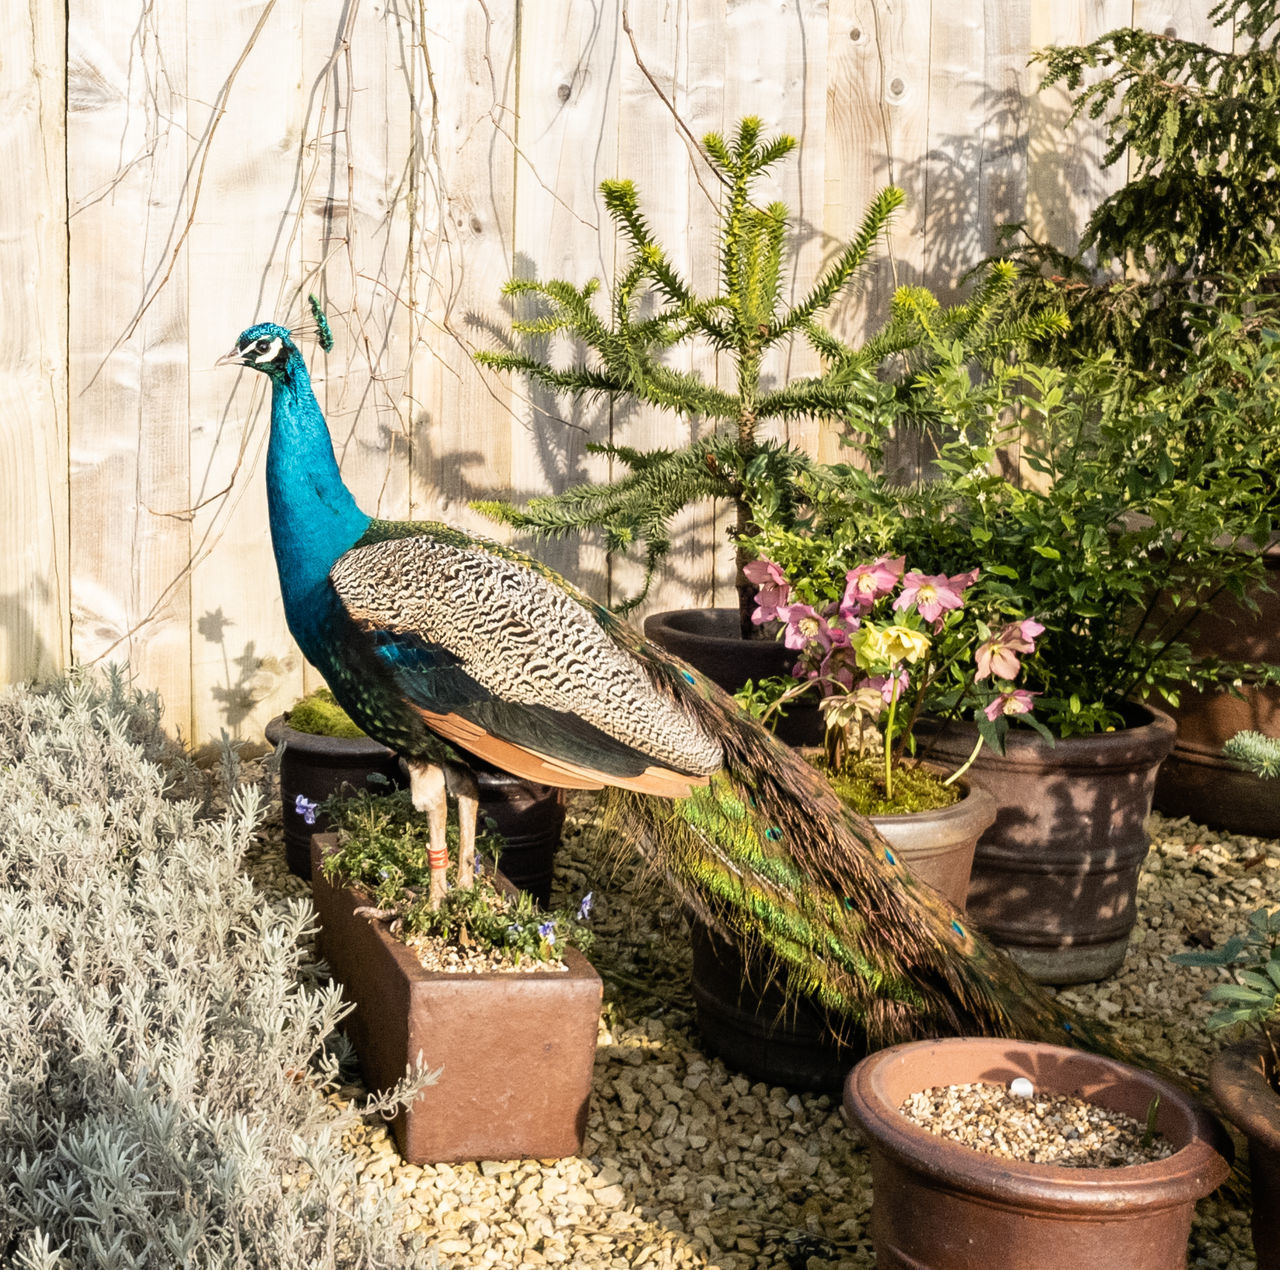 CLOSE-UP OF PEACOCK IN POTTED PLANTS